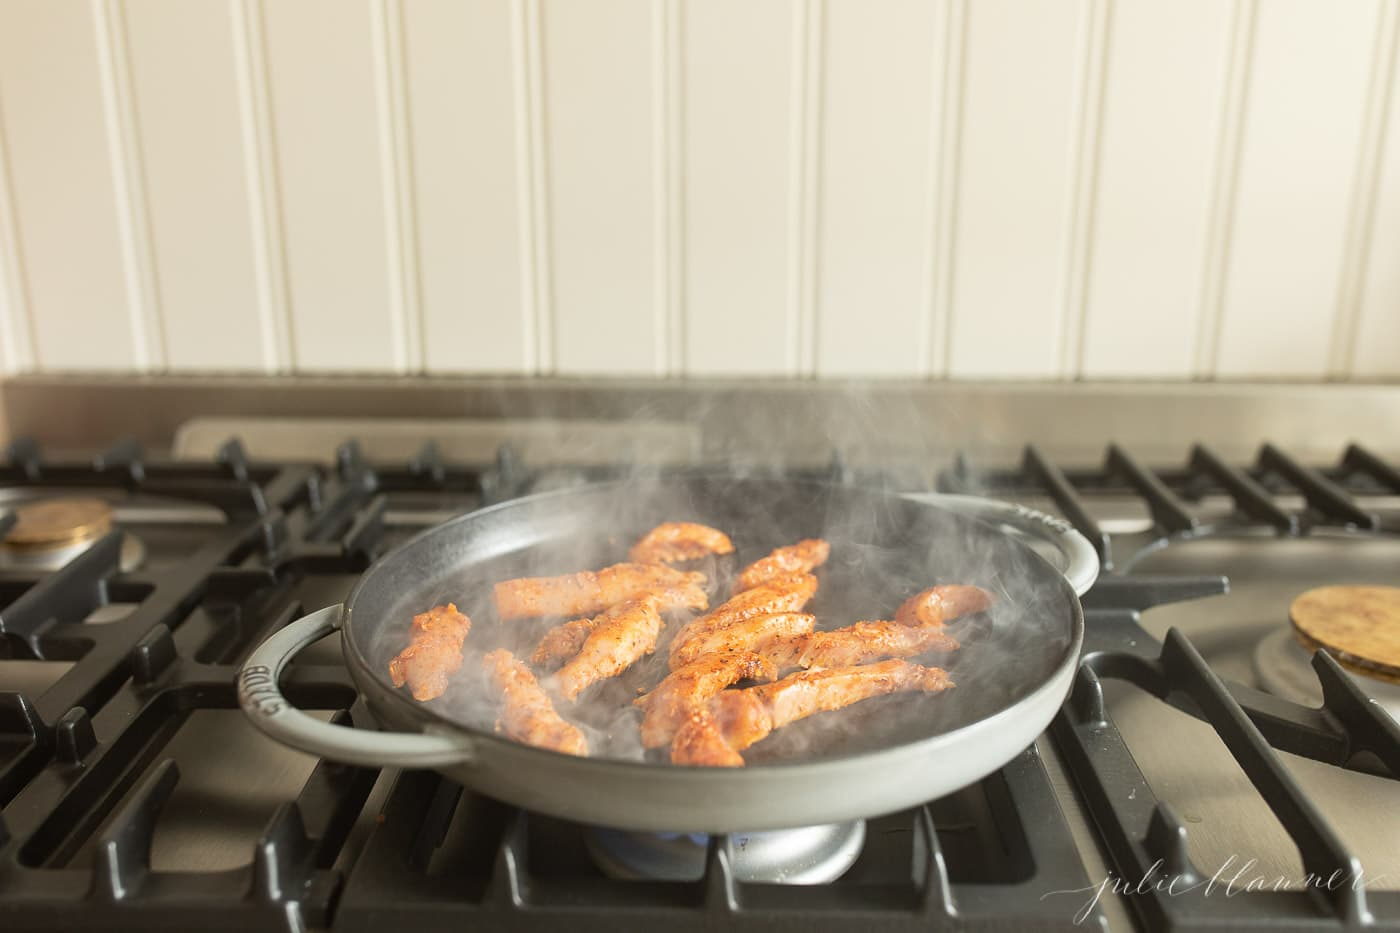 cajun spiced chicken cooking in a cast iron skillet